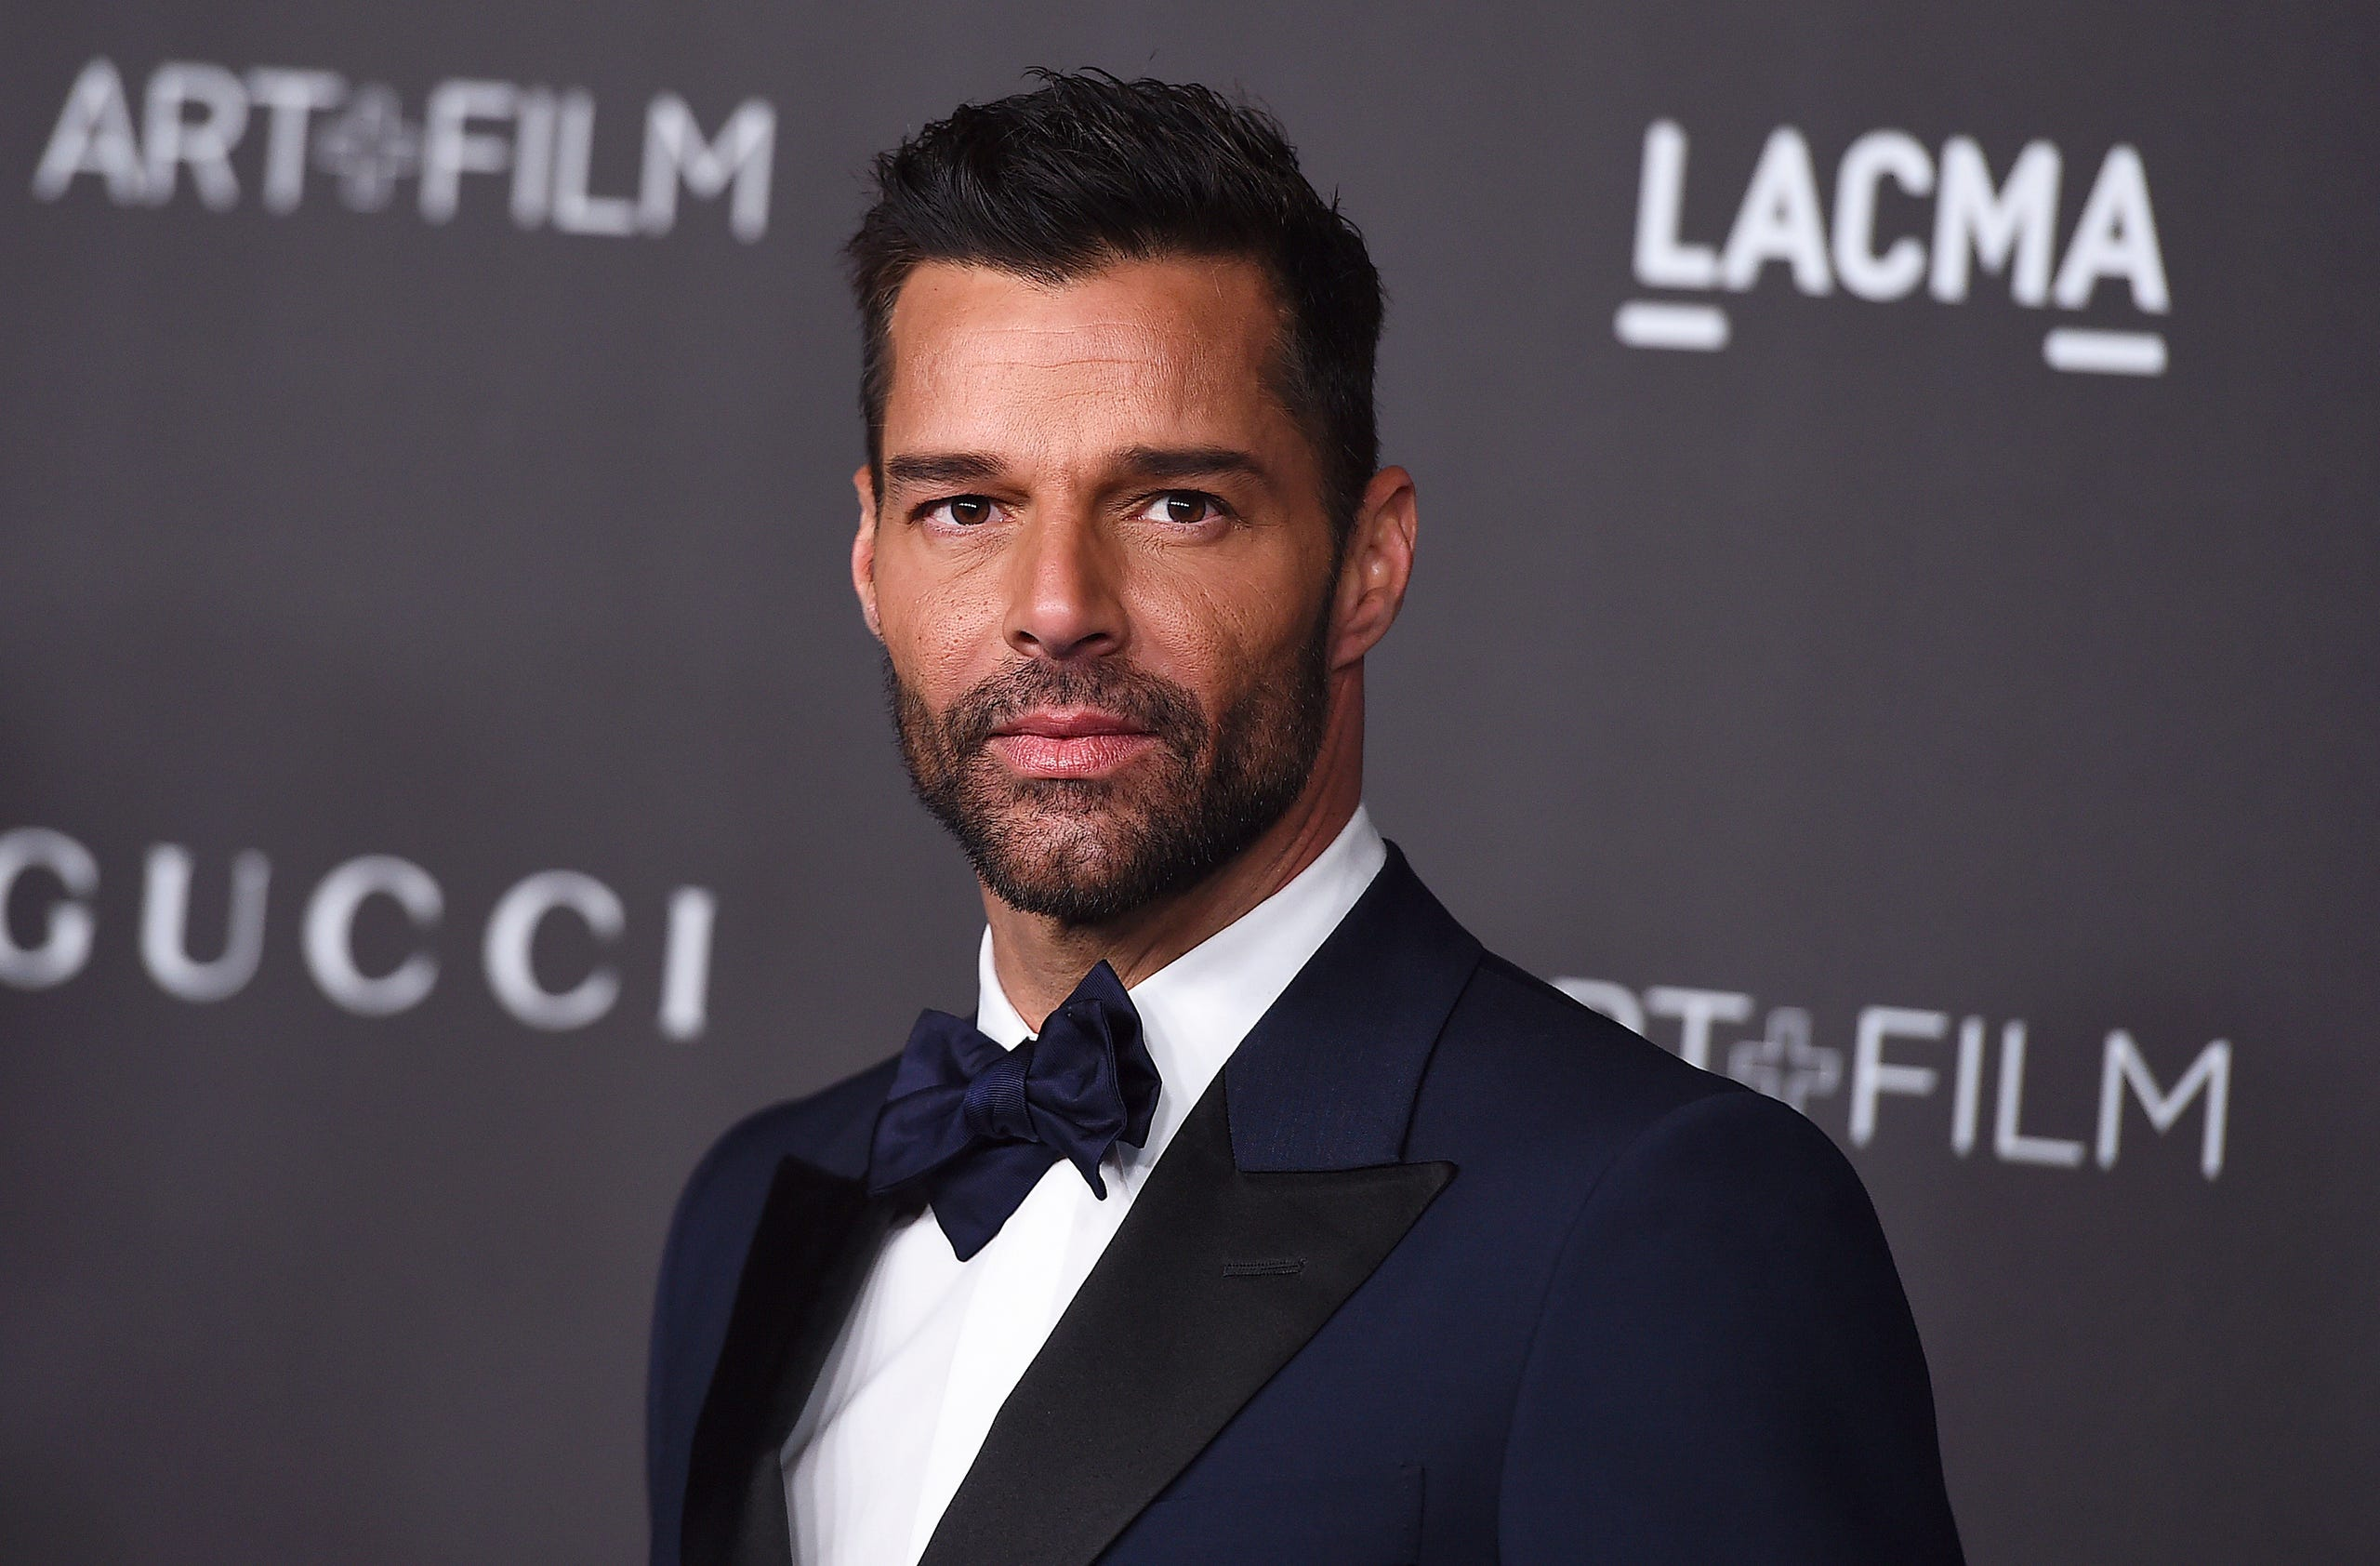 Ricky Martin's life and career in photographs